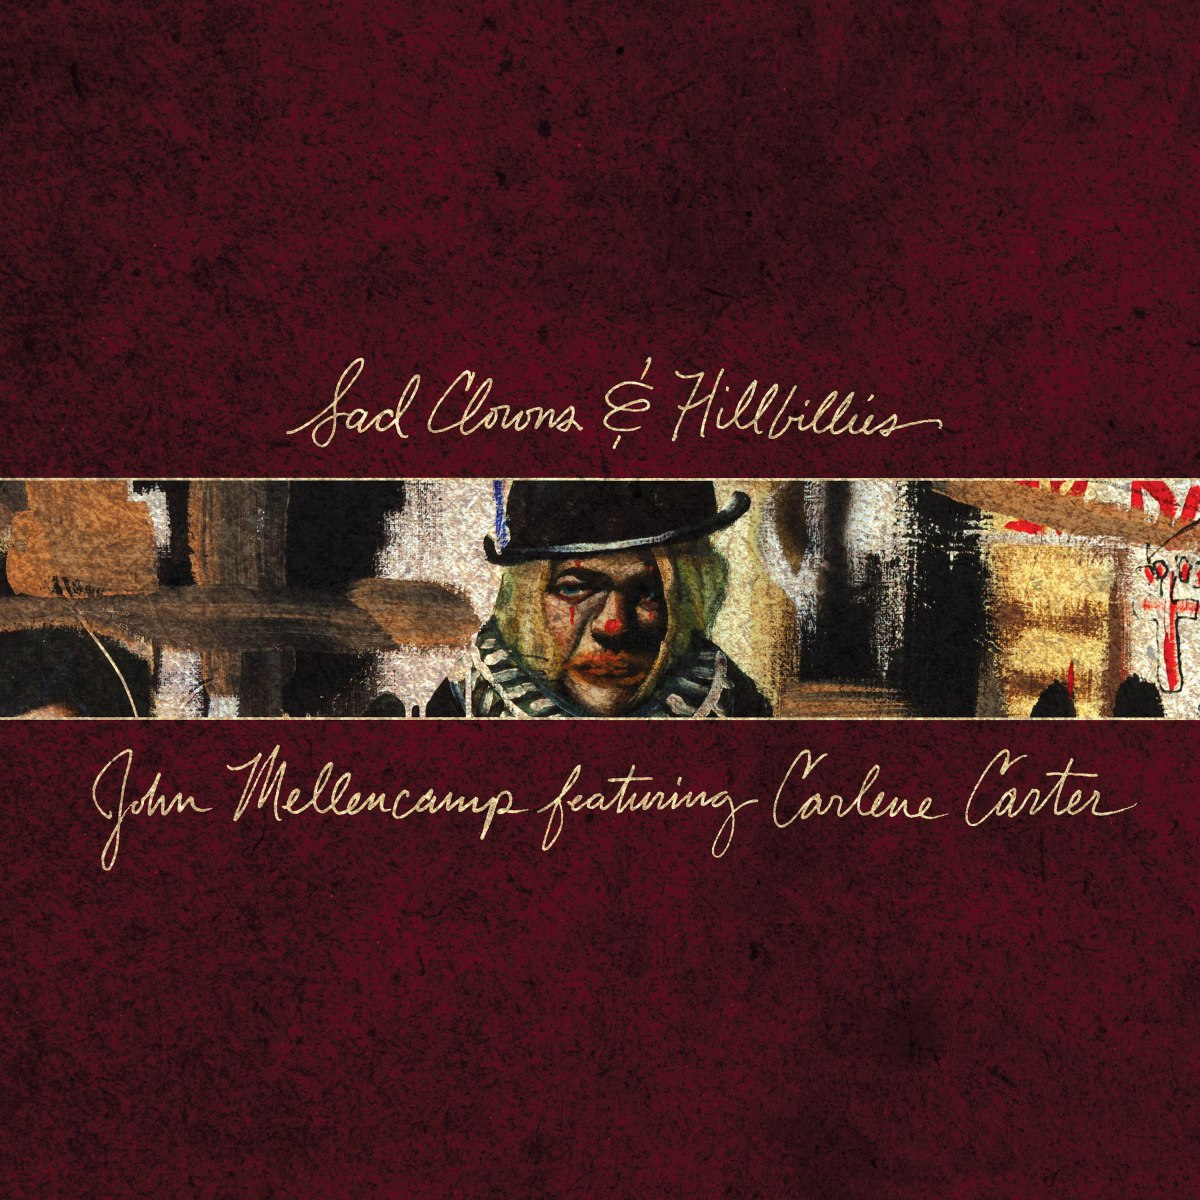 ALBUM REVIEW: John Mellencamp ft. Carlene Carter – Sad Clowns & Hillbillies